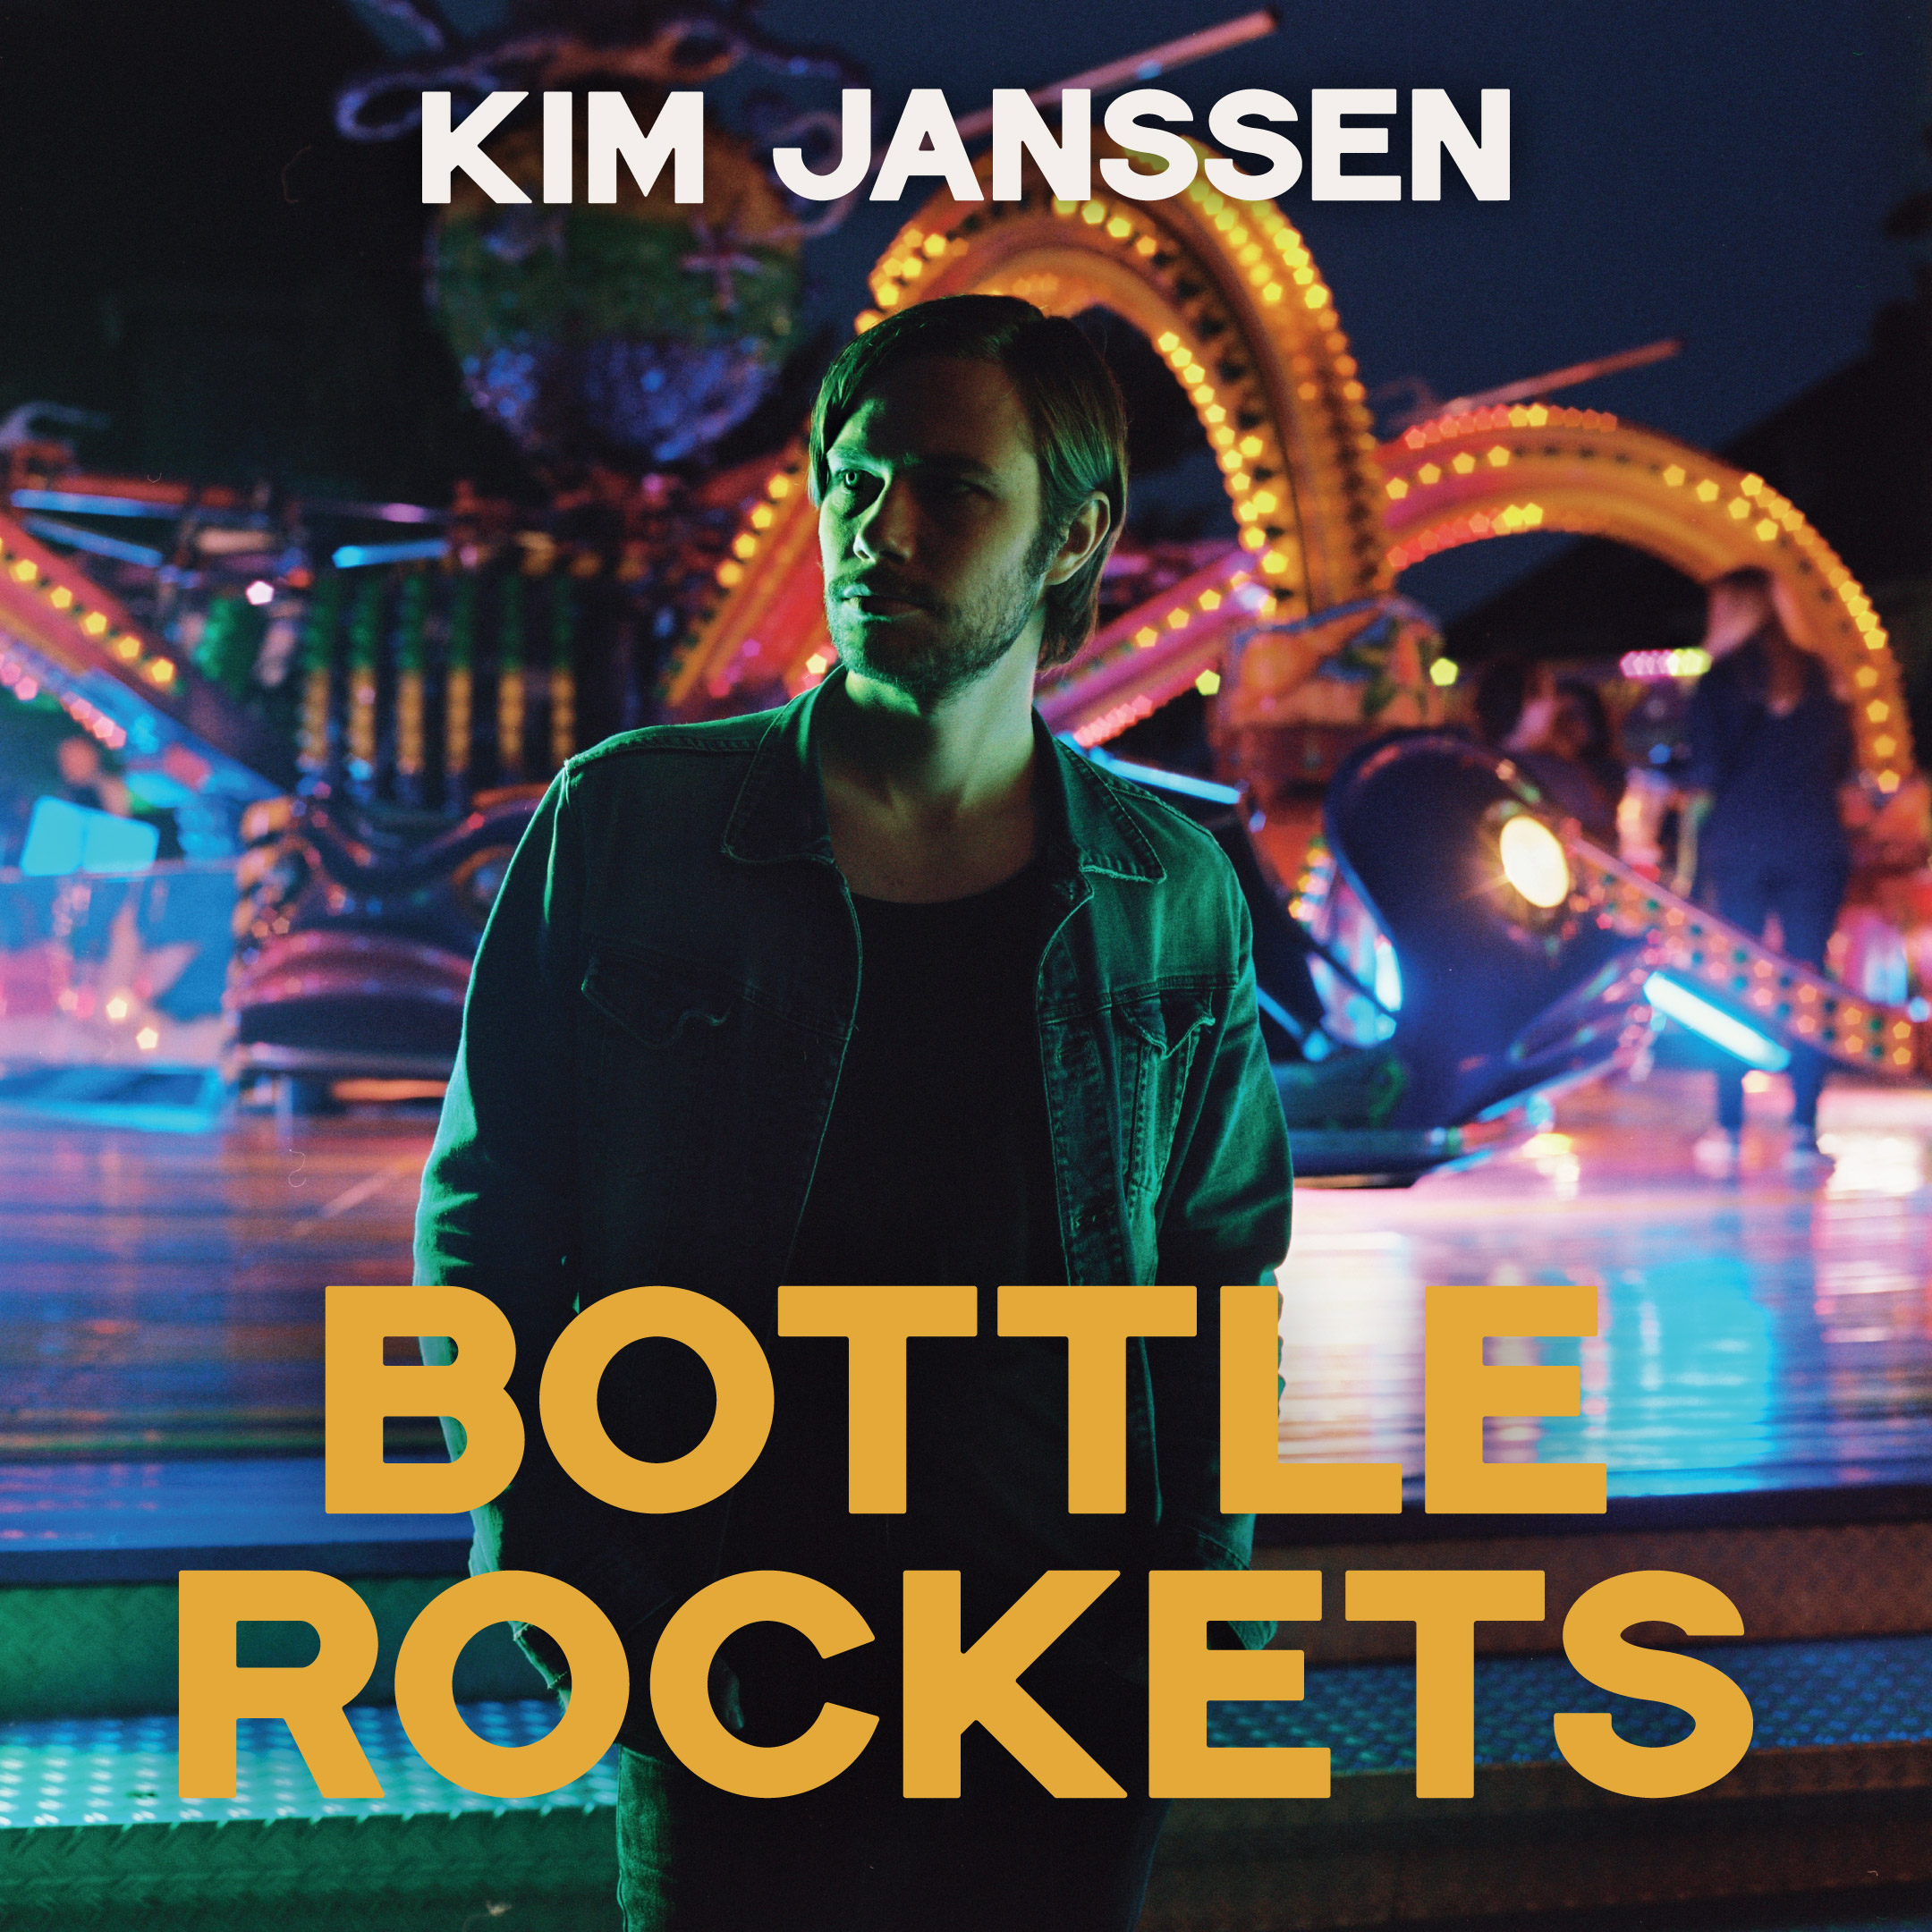 Kim Janssen - Bottle Rockets_cover